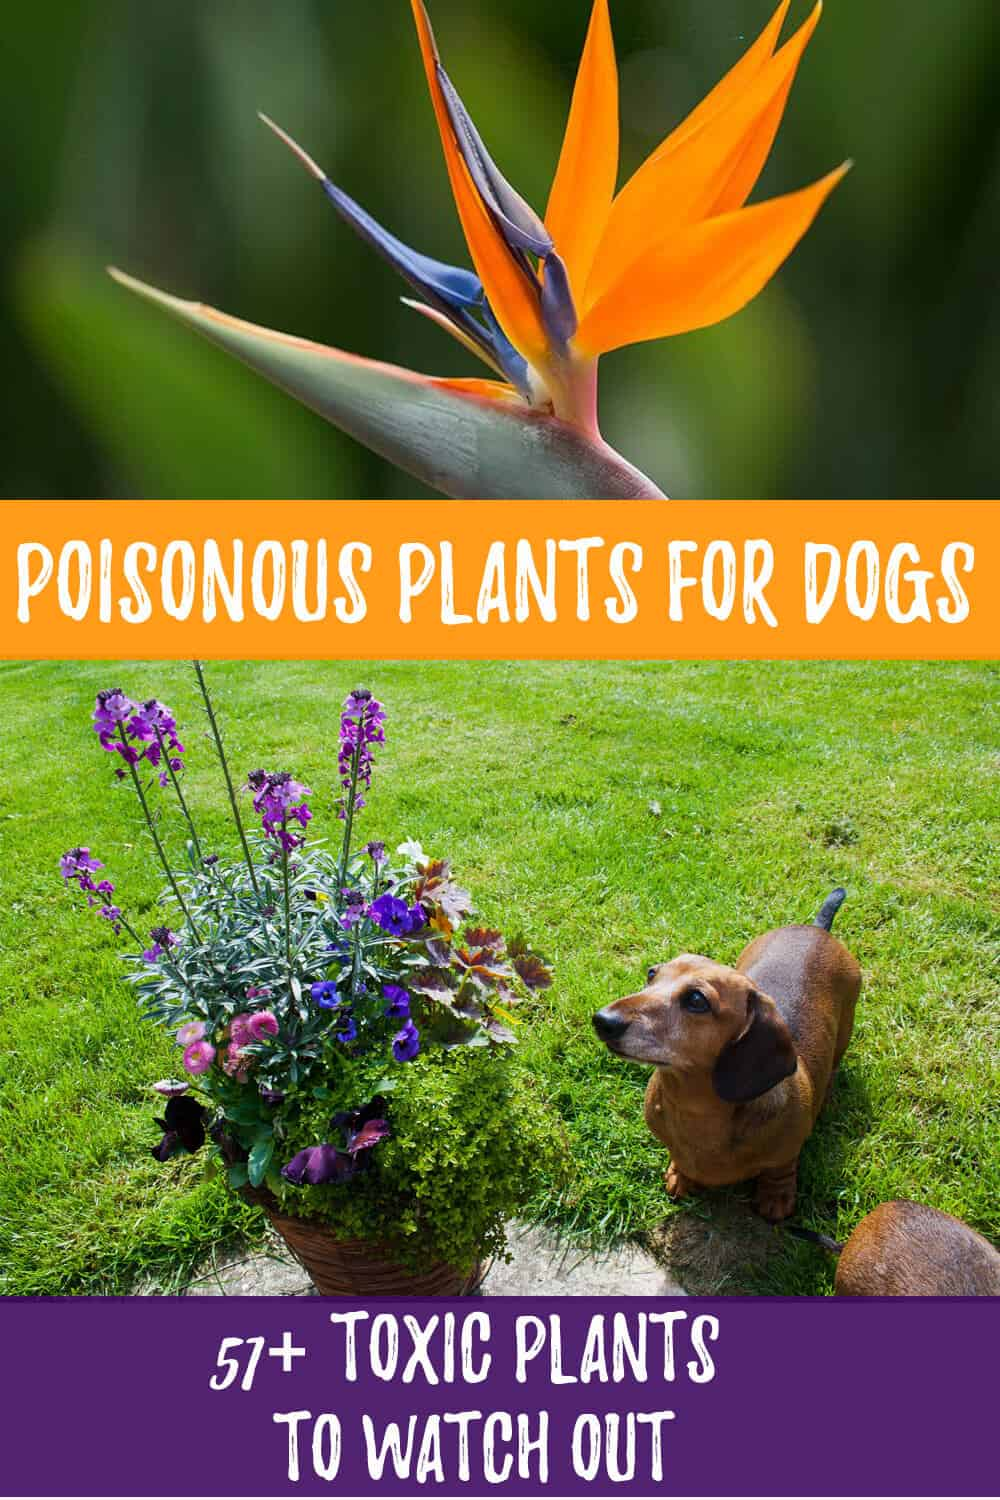 Poisonous Plants for Dogs: 51+ Toxic Plants to Watch Out